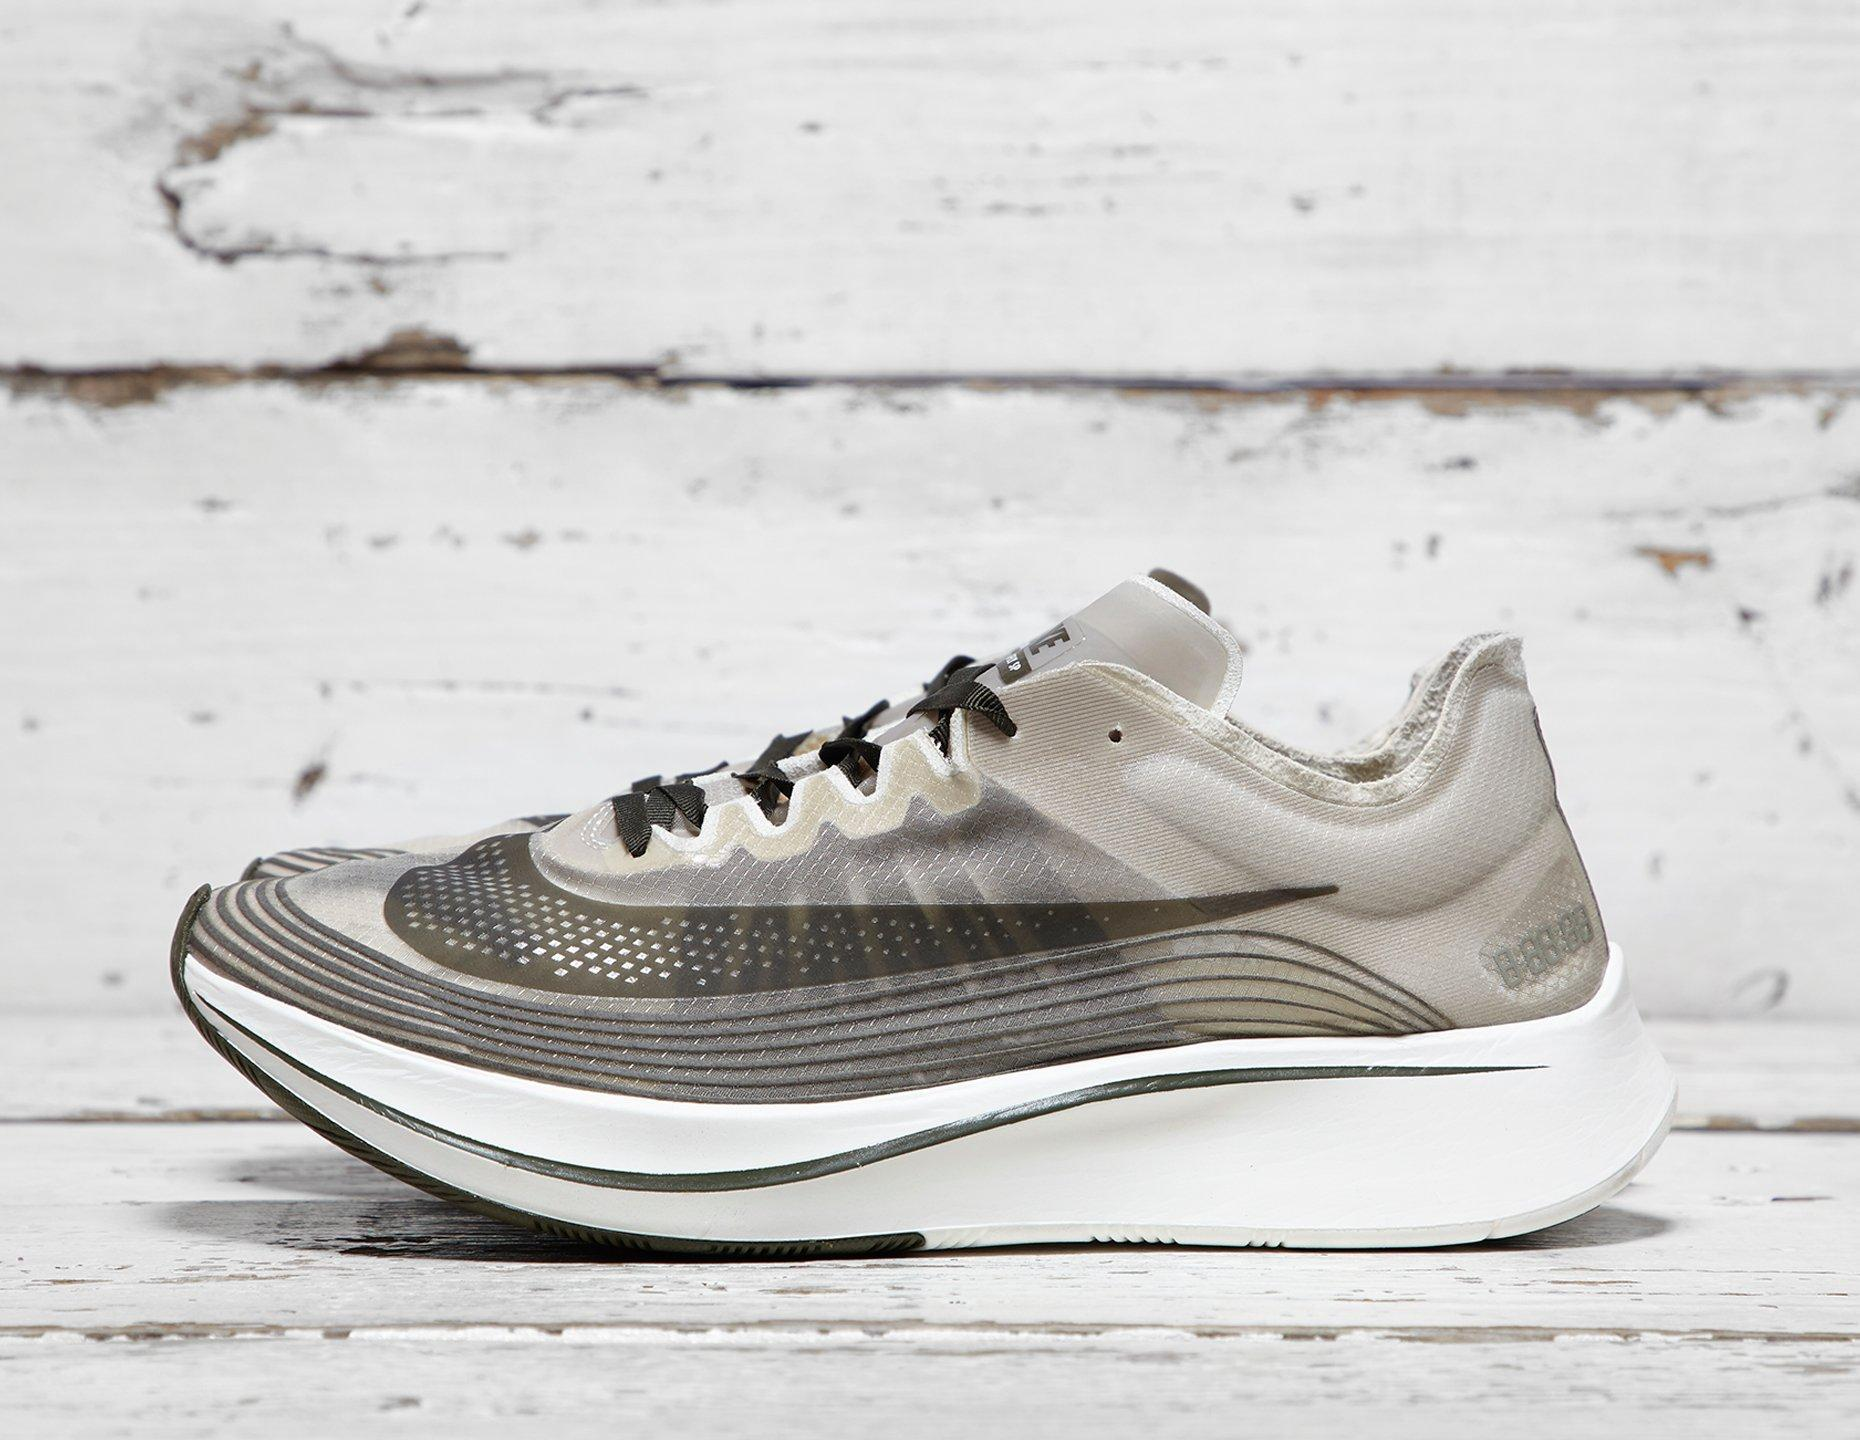 a537525a7c45 Lyst - Nike Zoom Fly Sp in White for Men